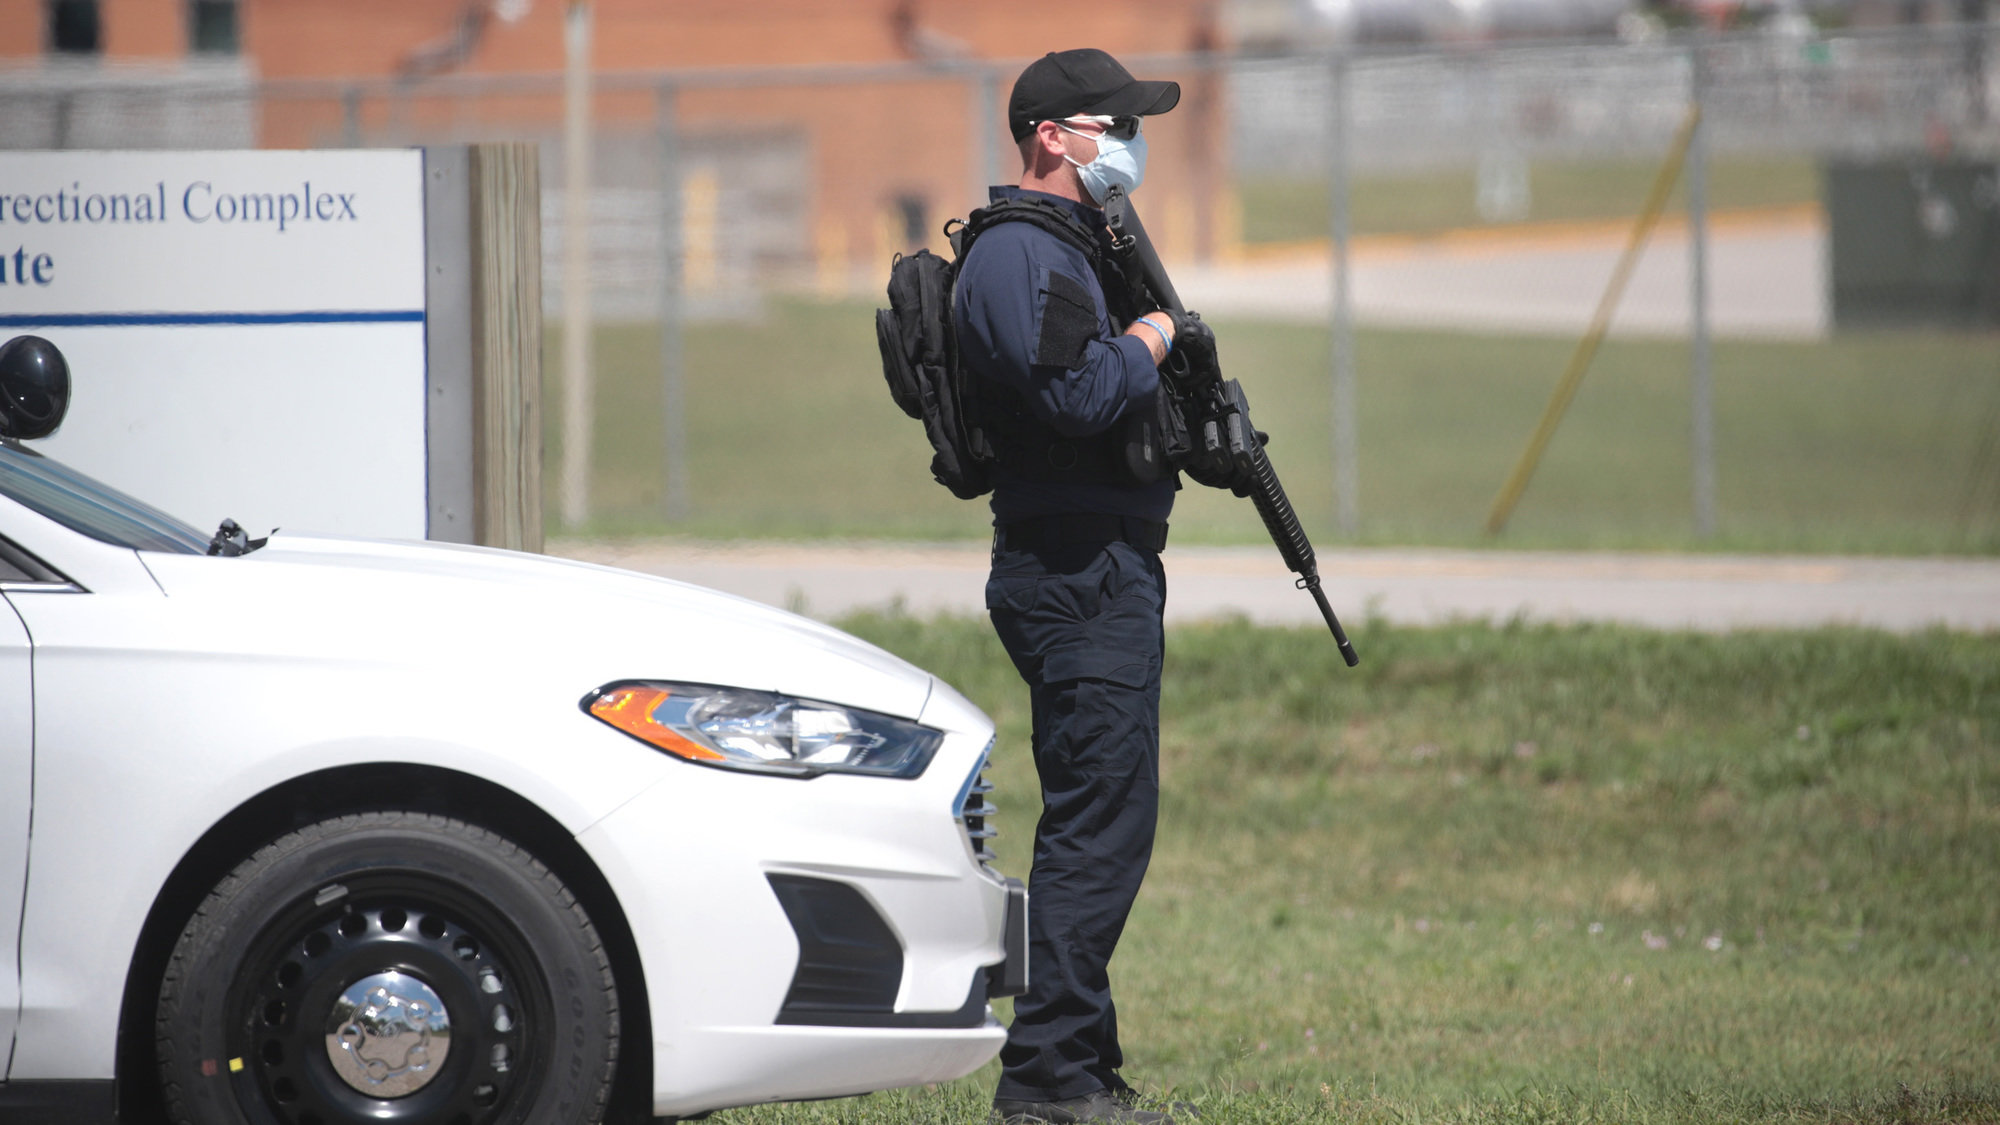 An officer outside the the Federal Correctional Complex in Terre Haute, Indiana, where the federal government was preparing to execute Daniel Lewis Lee in July 2020.